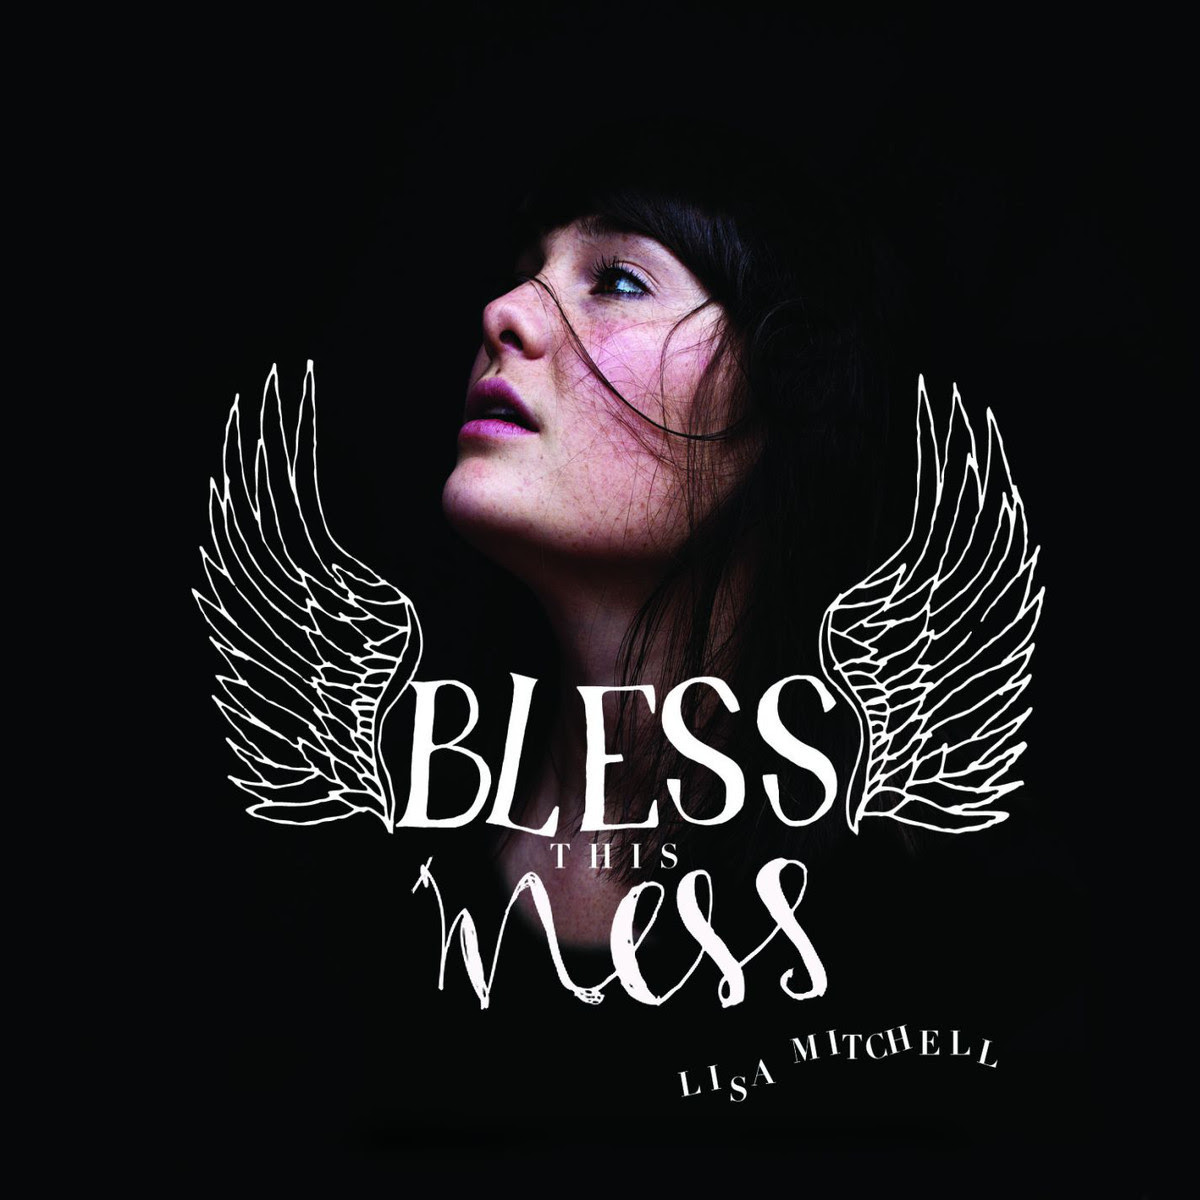 Bless This Mess by Lisa Mitchell